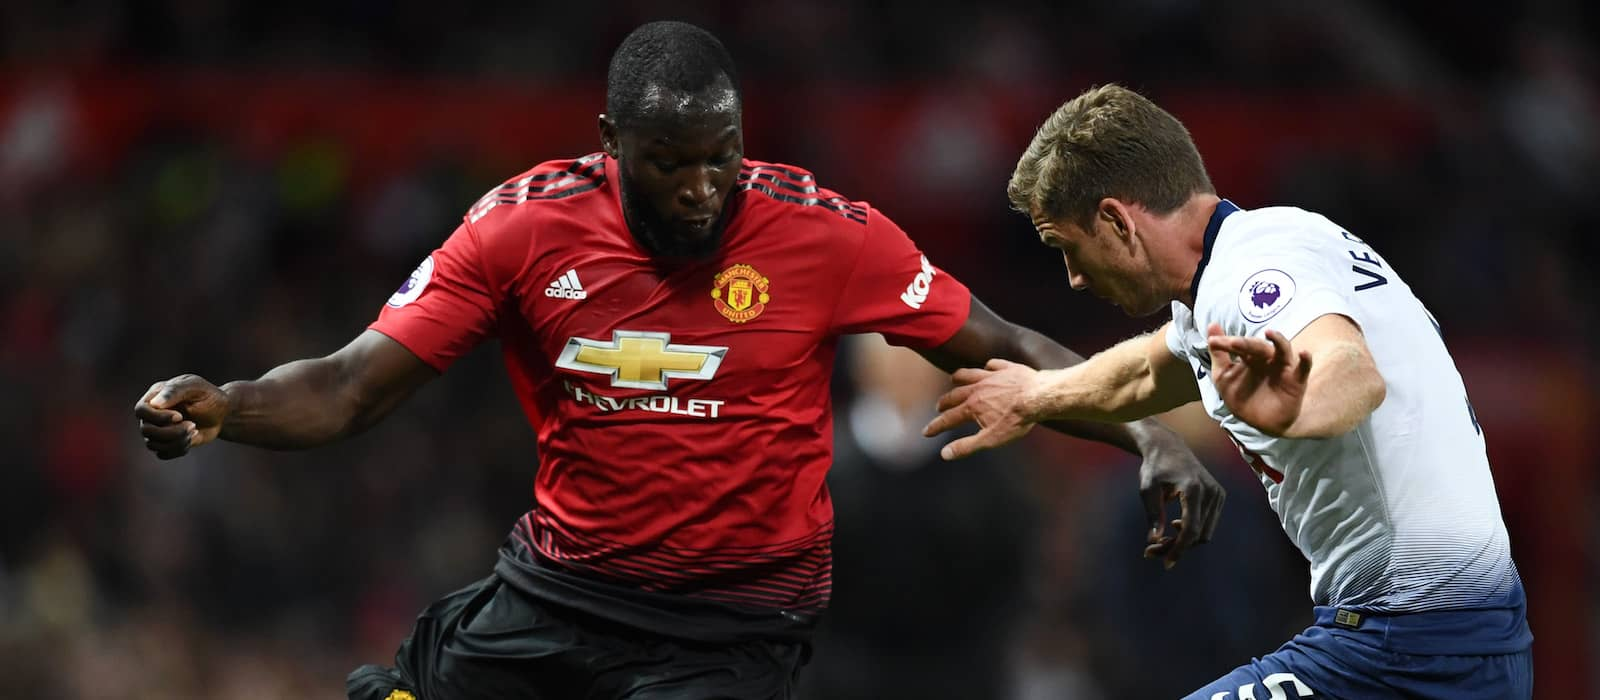 Ander Herrera: Manchester United were punished for missing chances against Tottenham Hotspur